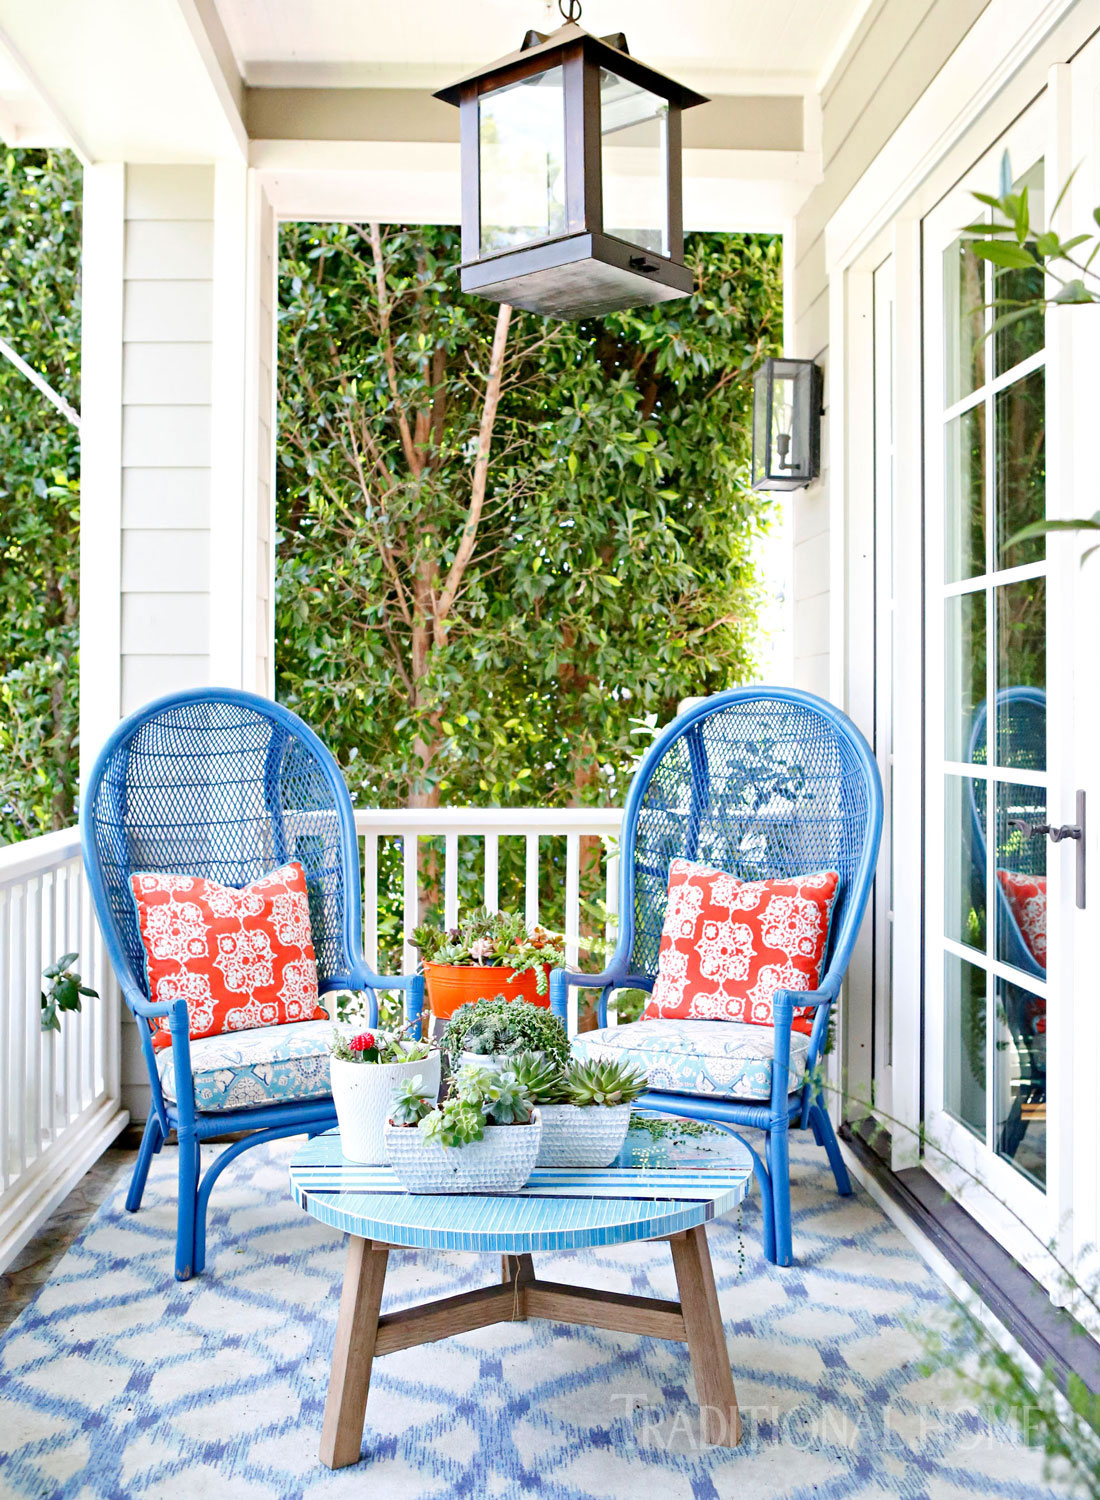 Cheerful red, white, and blue decor on a charming porch. Vintage wicker chairs shine in a new blue finish. Vibrant pillows extend the orange accent that weaves through the house. #porchdecor #redwhiteblue #americana #traditional